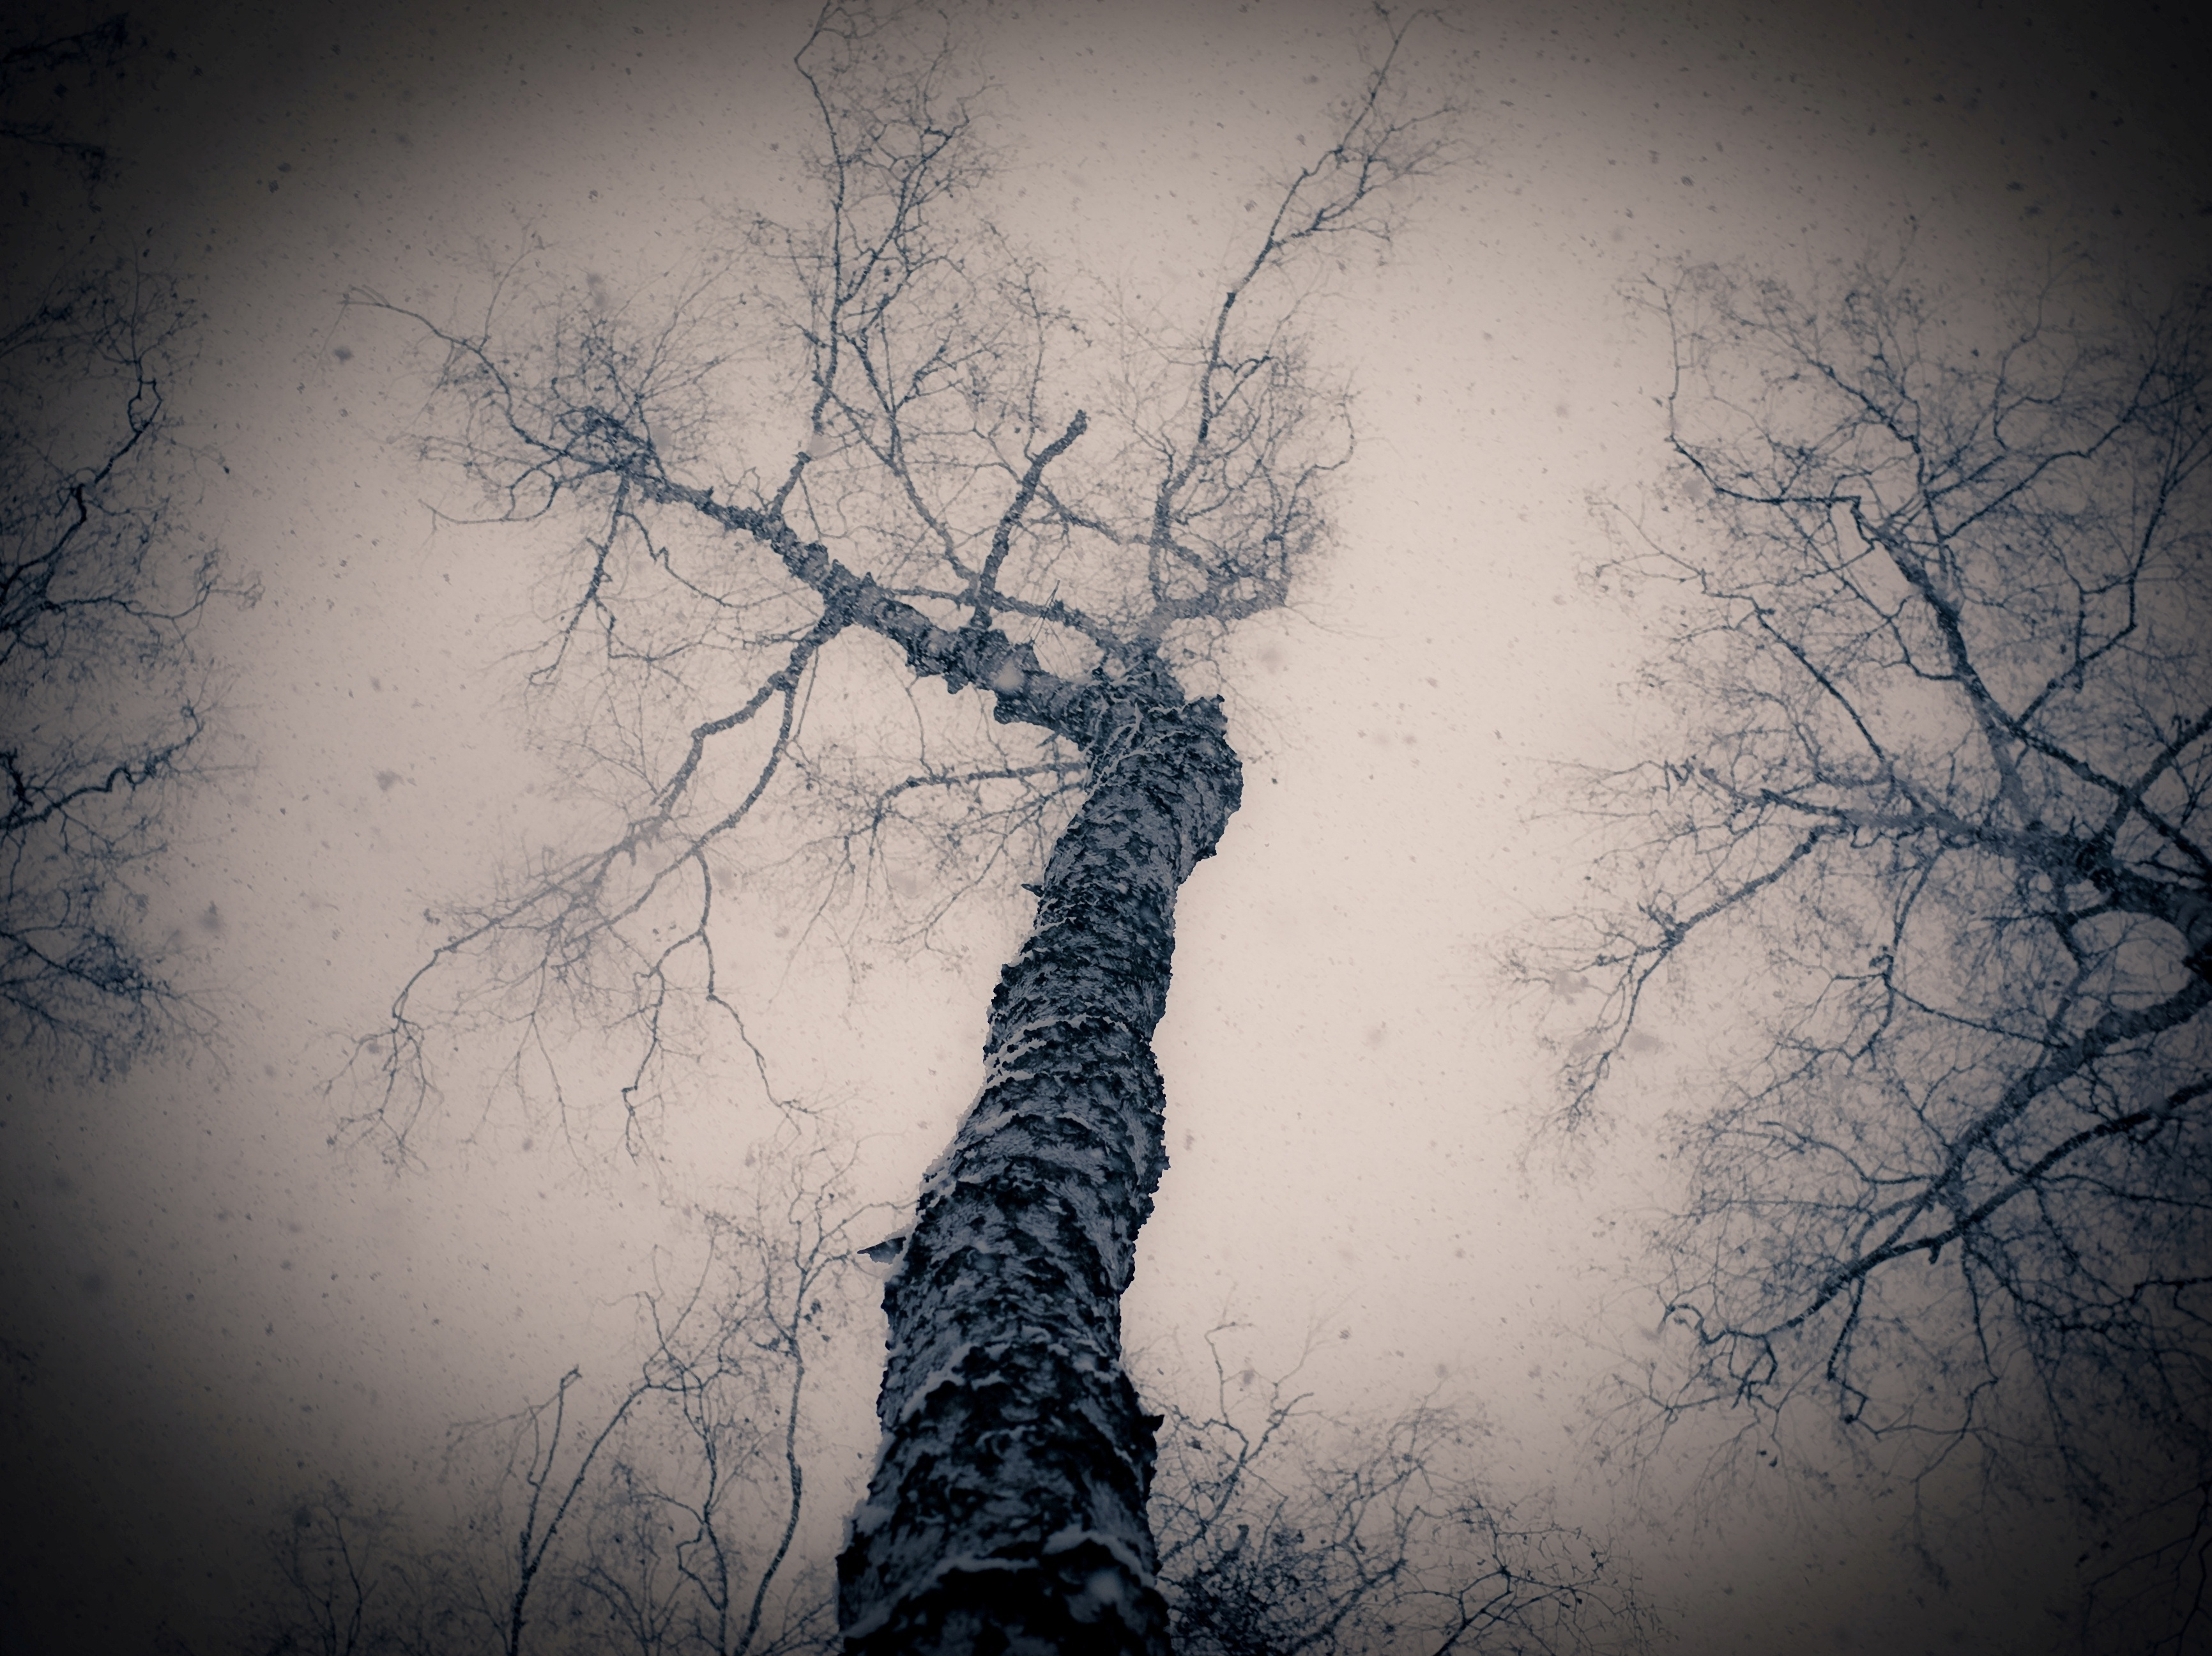 124299 download wallpaper Nature, Wood, Tree, Gloomy, From Below, Branches, Branch screensavers and pictures for free